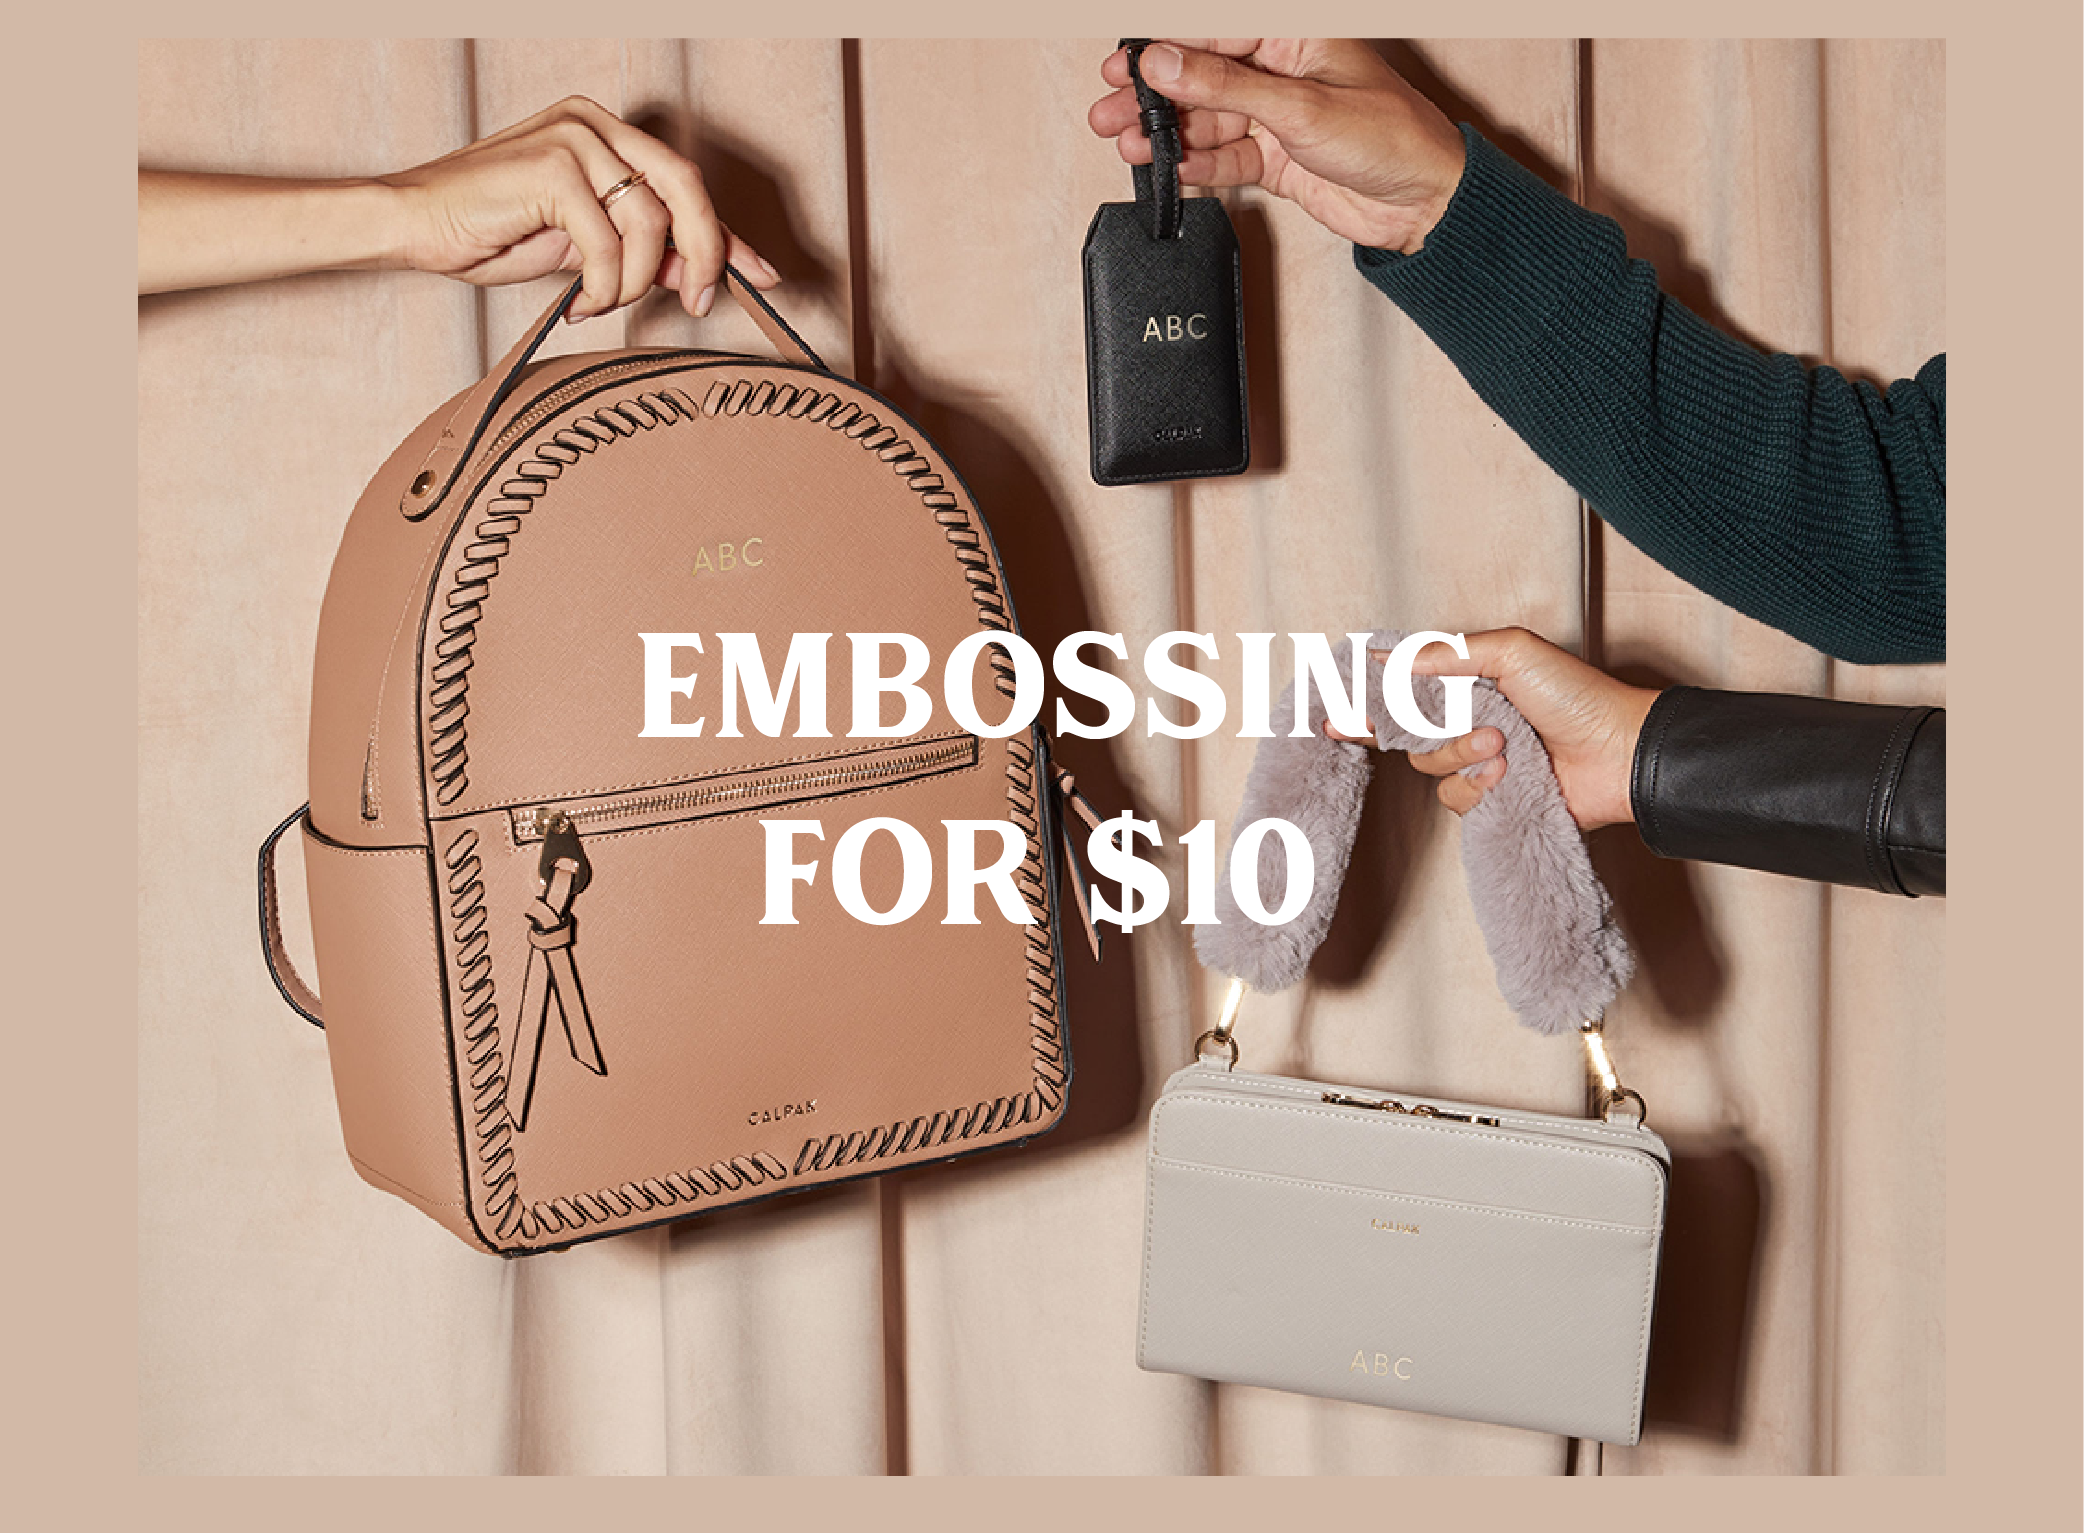 Embossing for $10